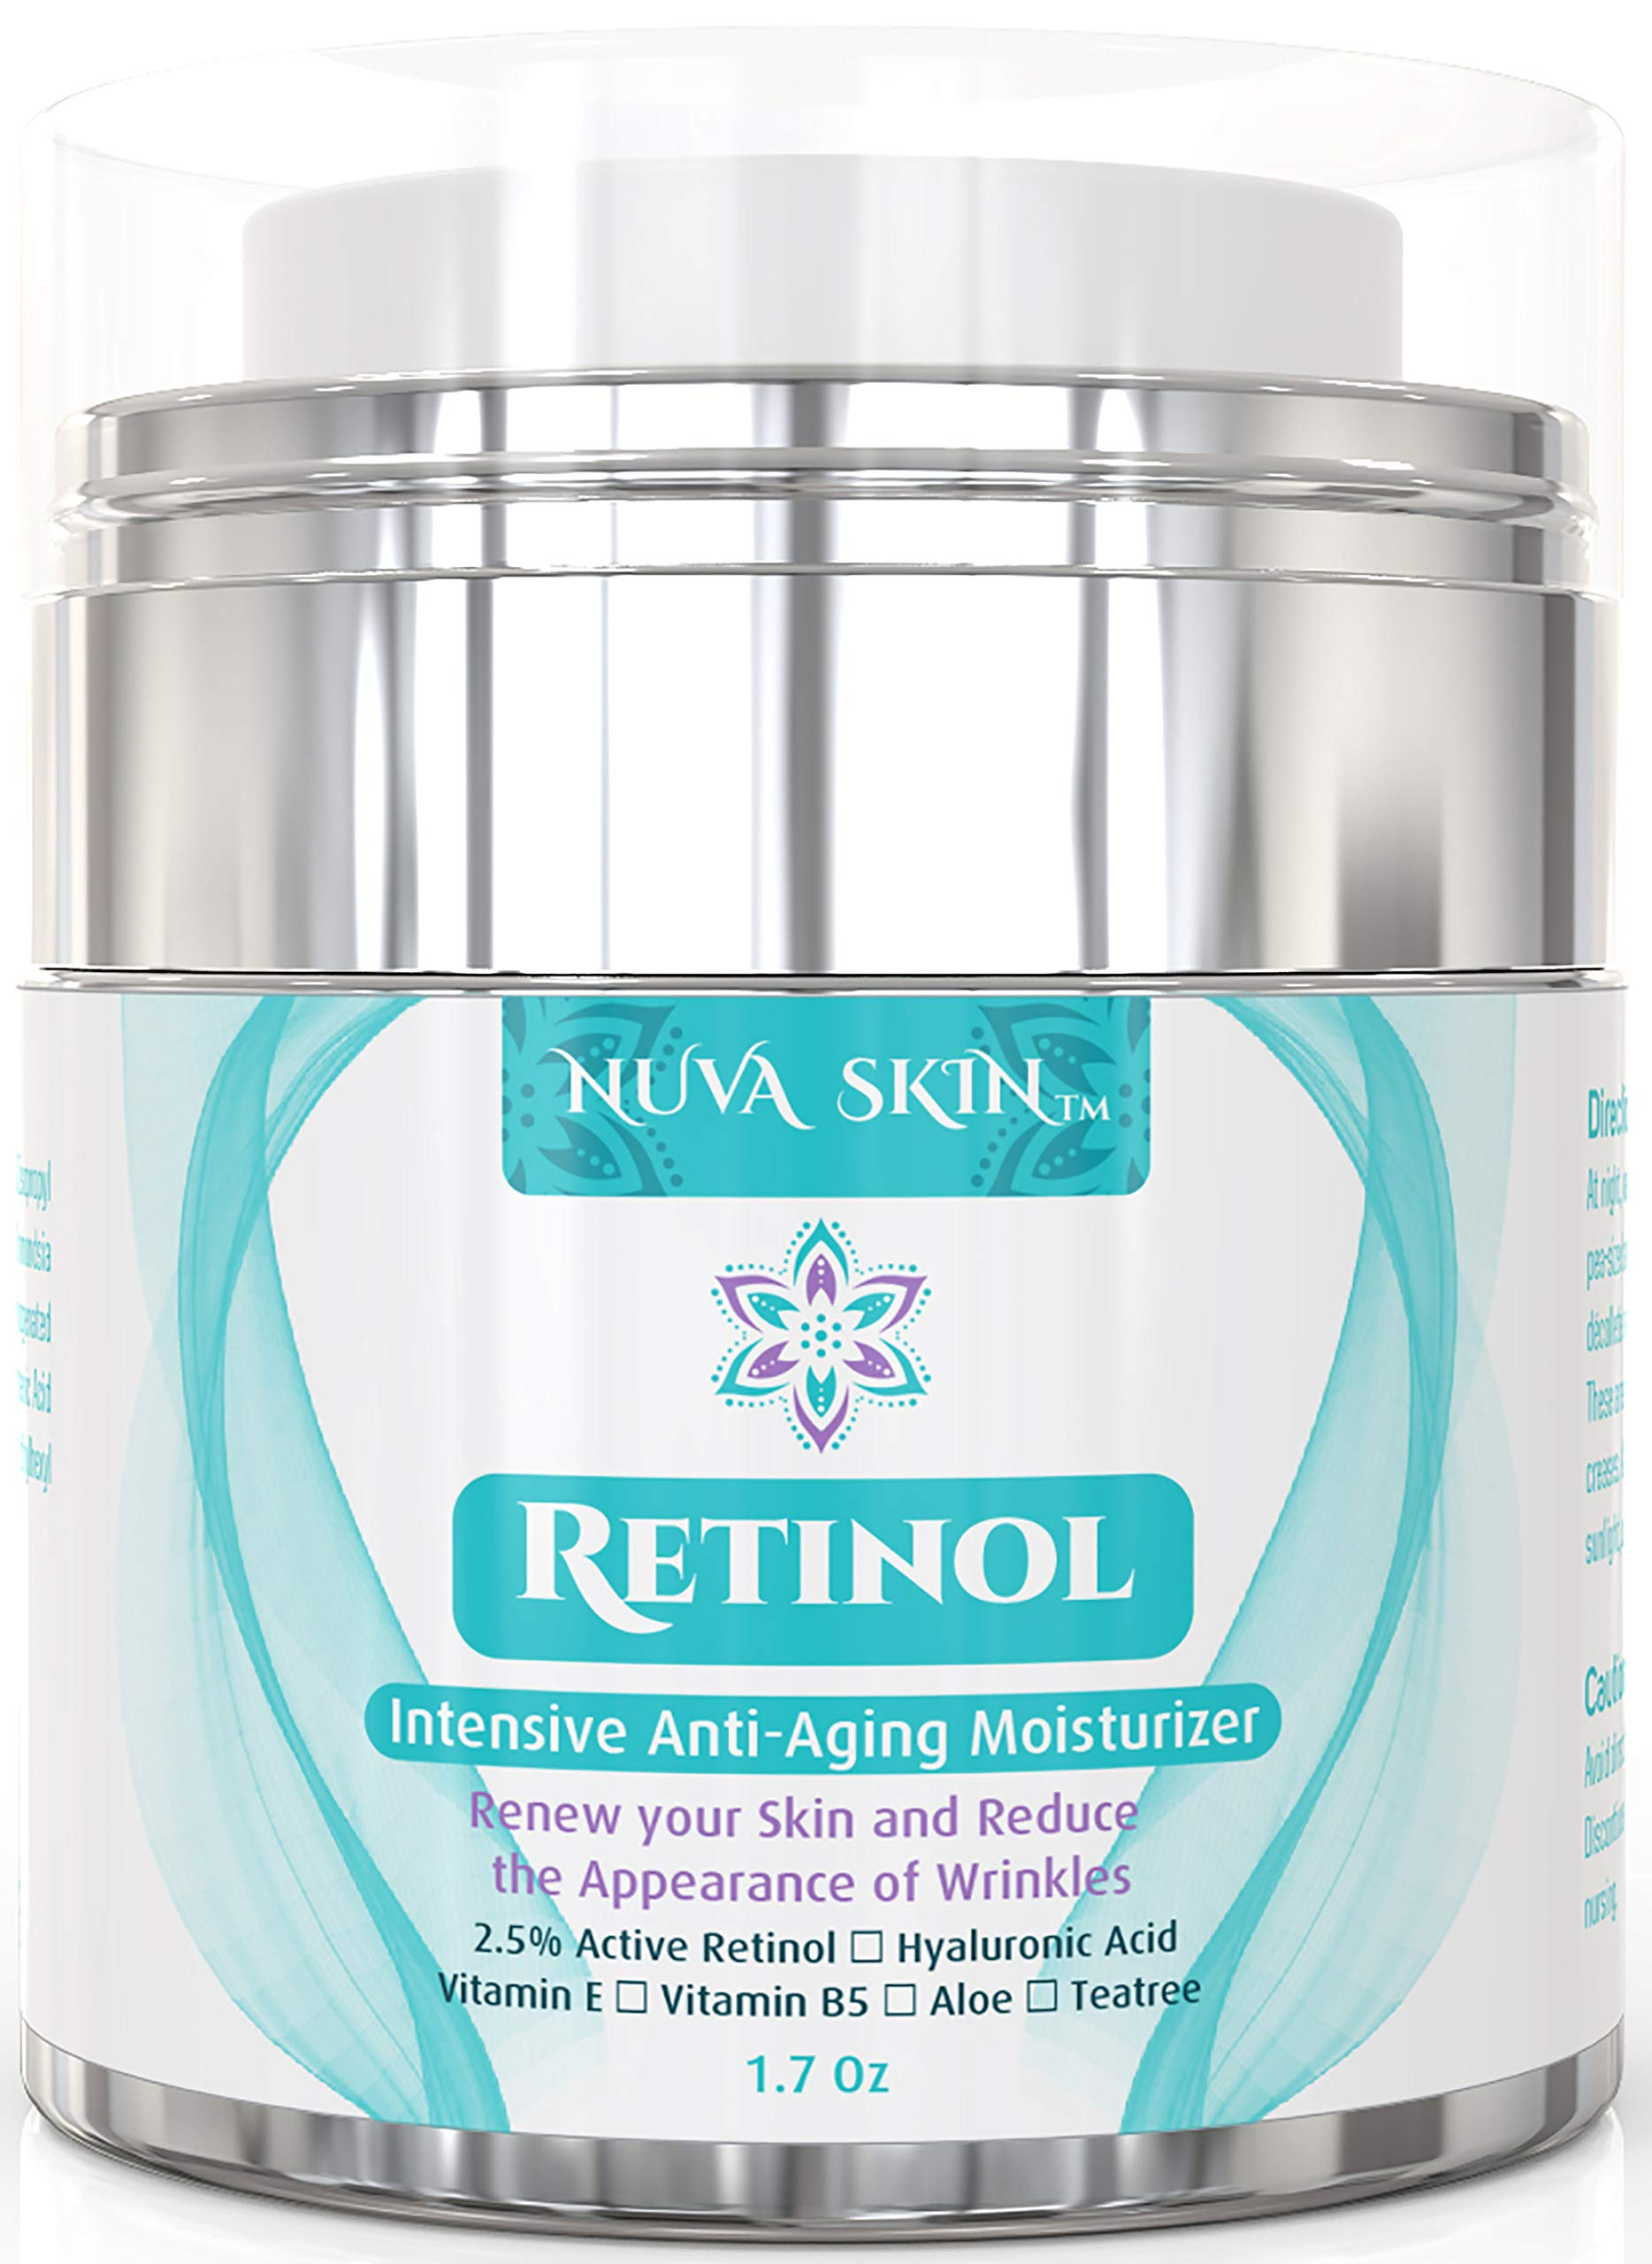 Nuva Skin Retinol Cream Moisturizer for Face and Eye Area - With Retinol, Hyaluronic Acid & Vitamin E - Anti Aging Treatment Reduces Wrinkles & Fine Lines - Gentle Day and Night Serum, 1.7 Fl Oz by Nuva Skin